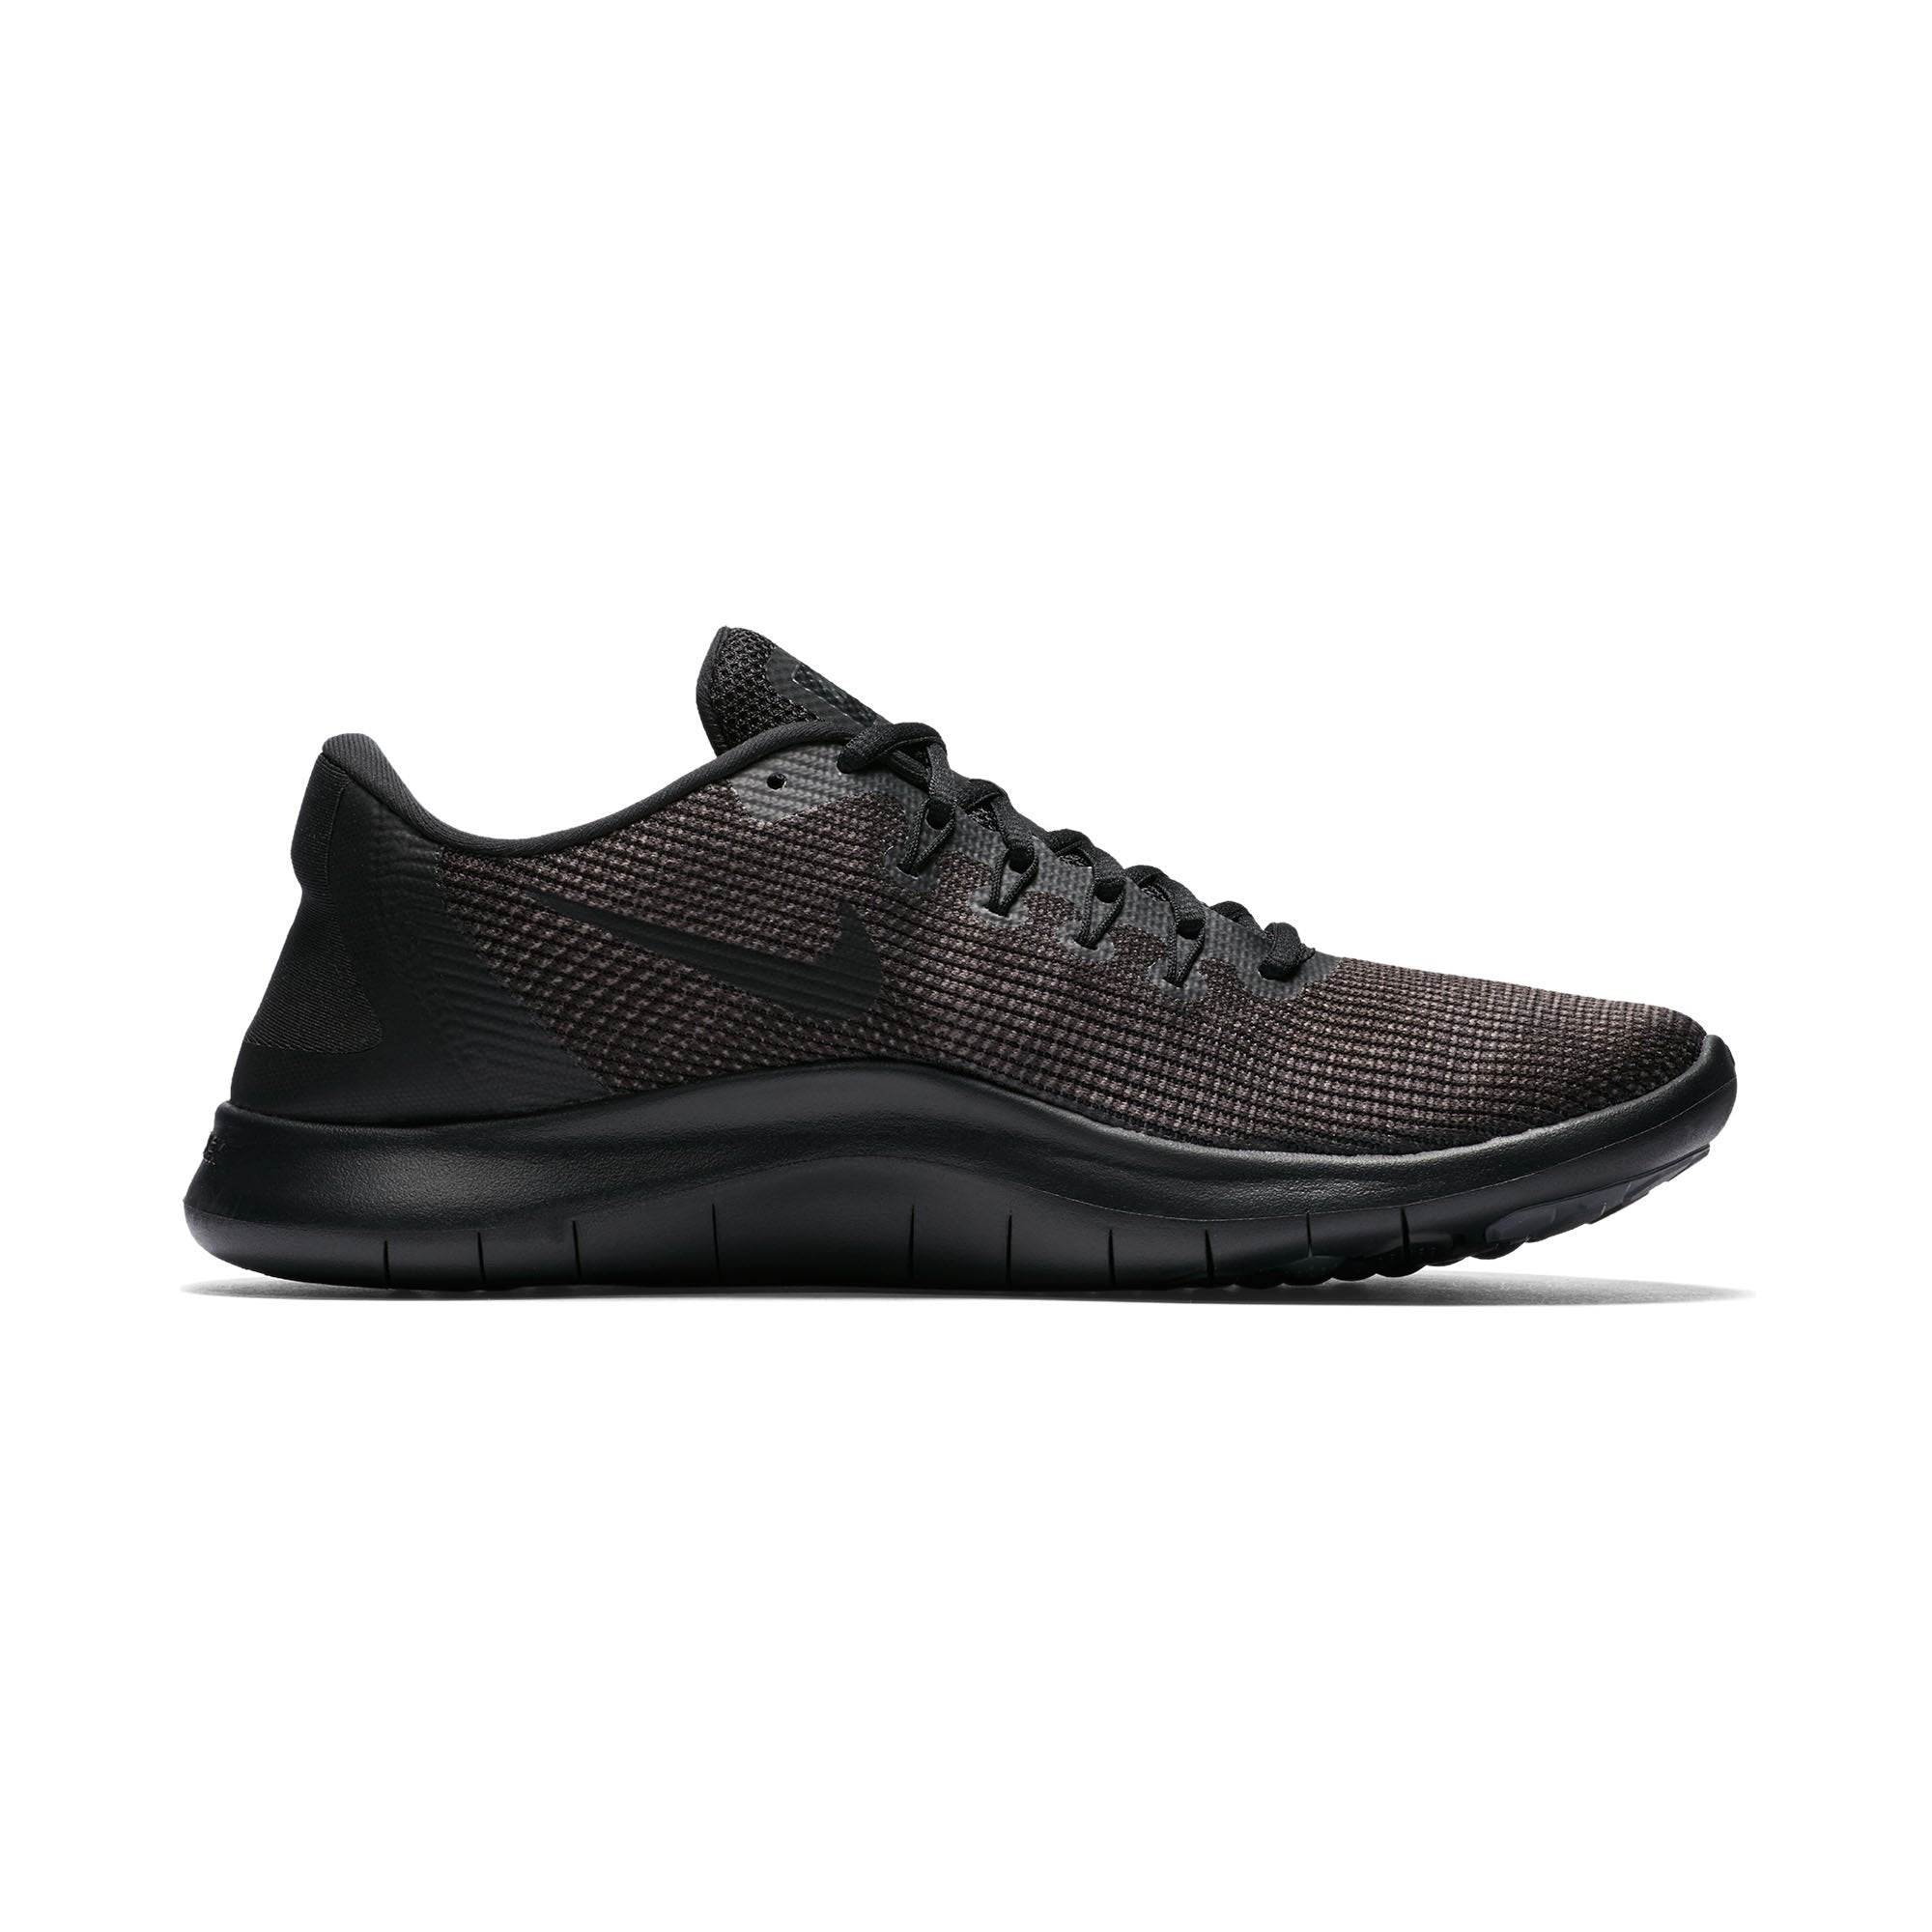 new product 8969c 0ae86 Buy Nike Men Flex Rn 2018 Running Shoe, Black Dark Grey Anthracite Online  in Singapore   Royal Sporting House